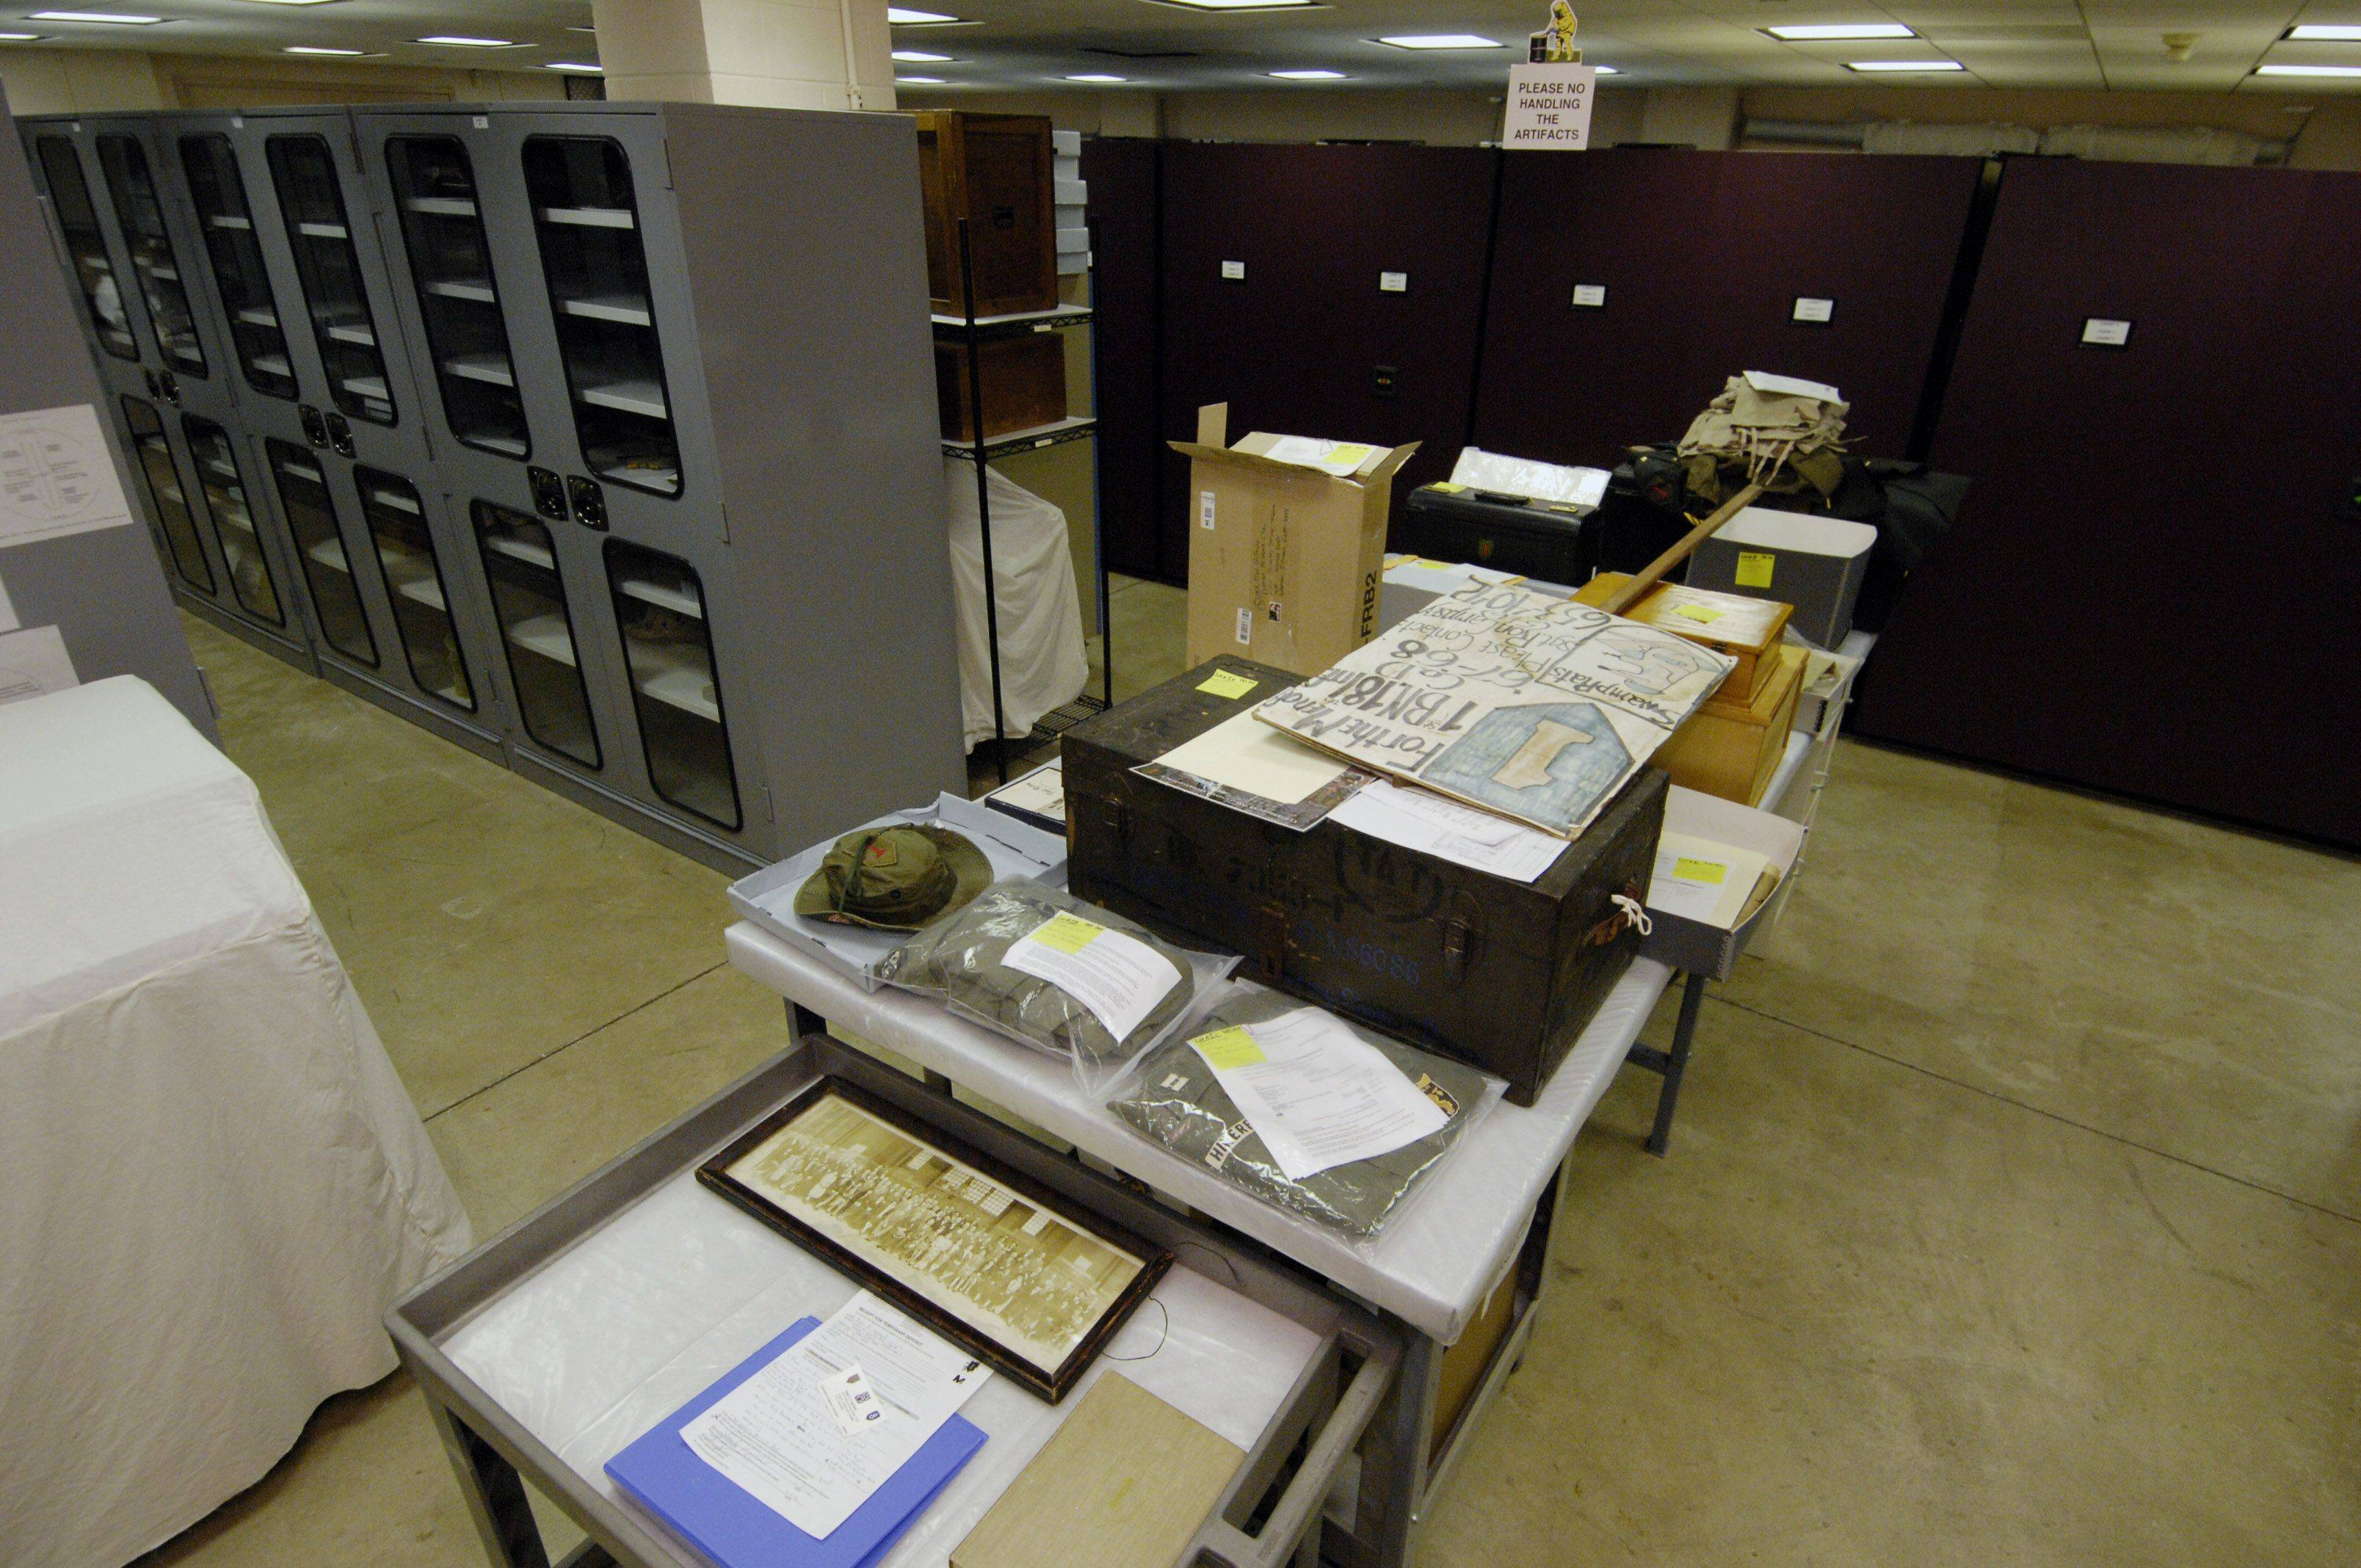 The collections area at 1st Division Museum, that is not open to the public, is filled with cabinet after cabinet holding historical items related to the 1st Division and the U.S. military.